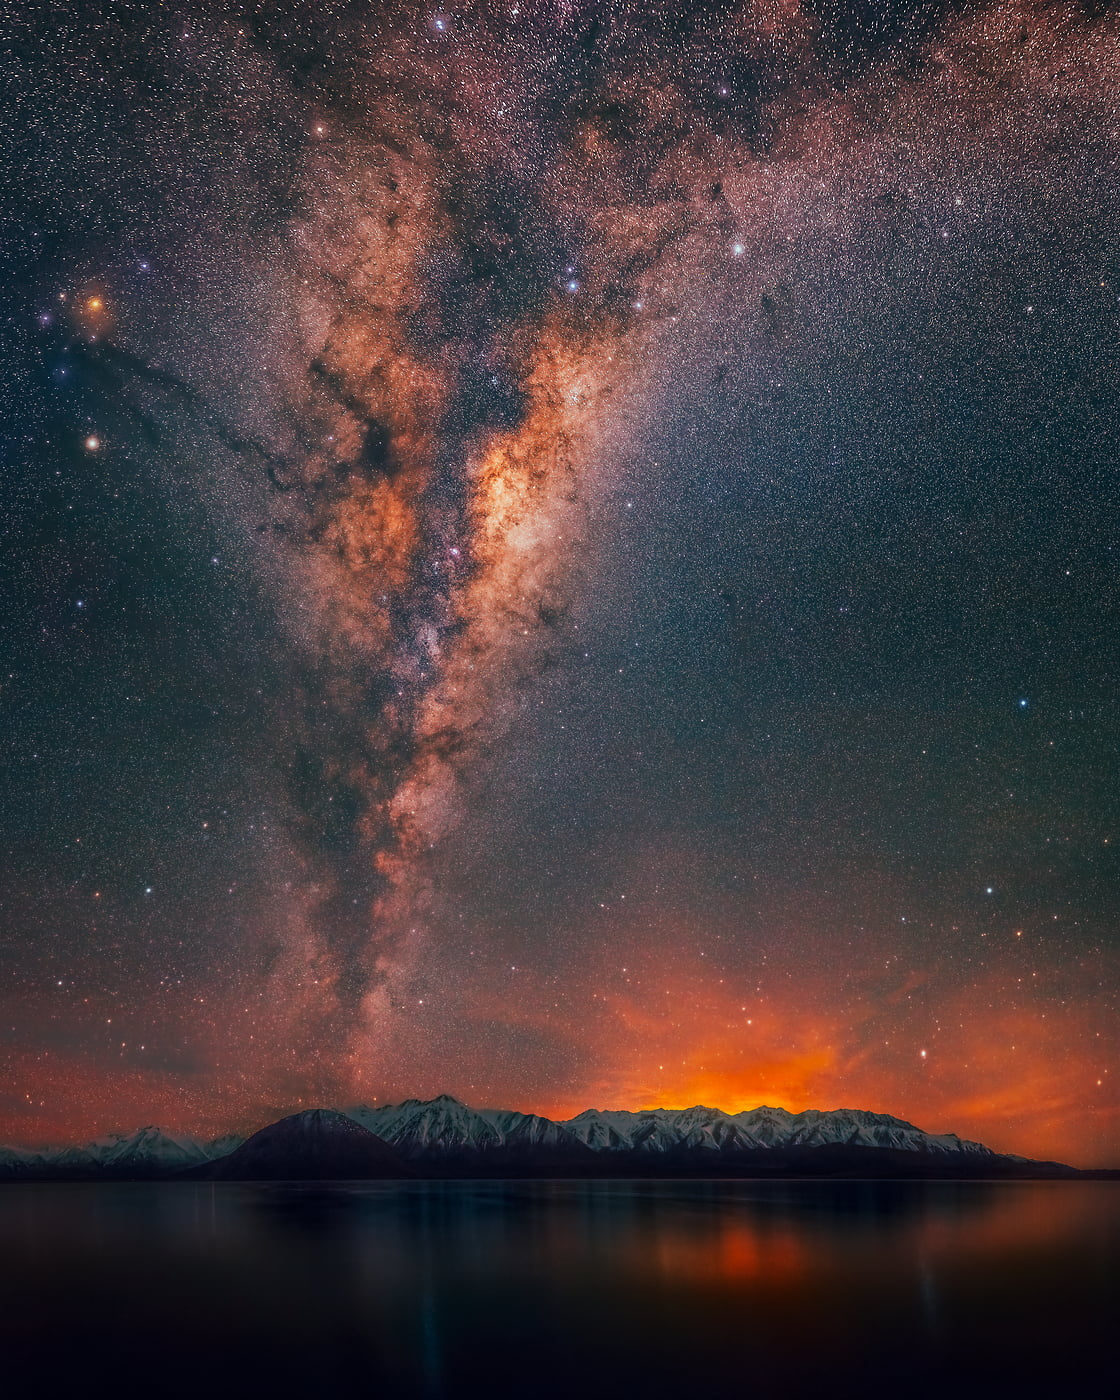 477 megapixels! A very high resolution, large-format VAST photo print of the night sky, milky way, and stars over mountains and a lake; fine art astrophotography landscape photo created by Paul Wilson in Lake Heron, New Zealand